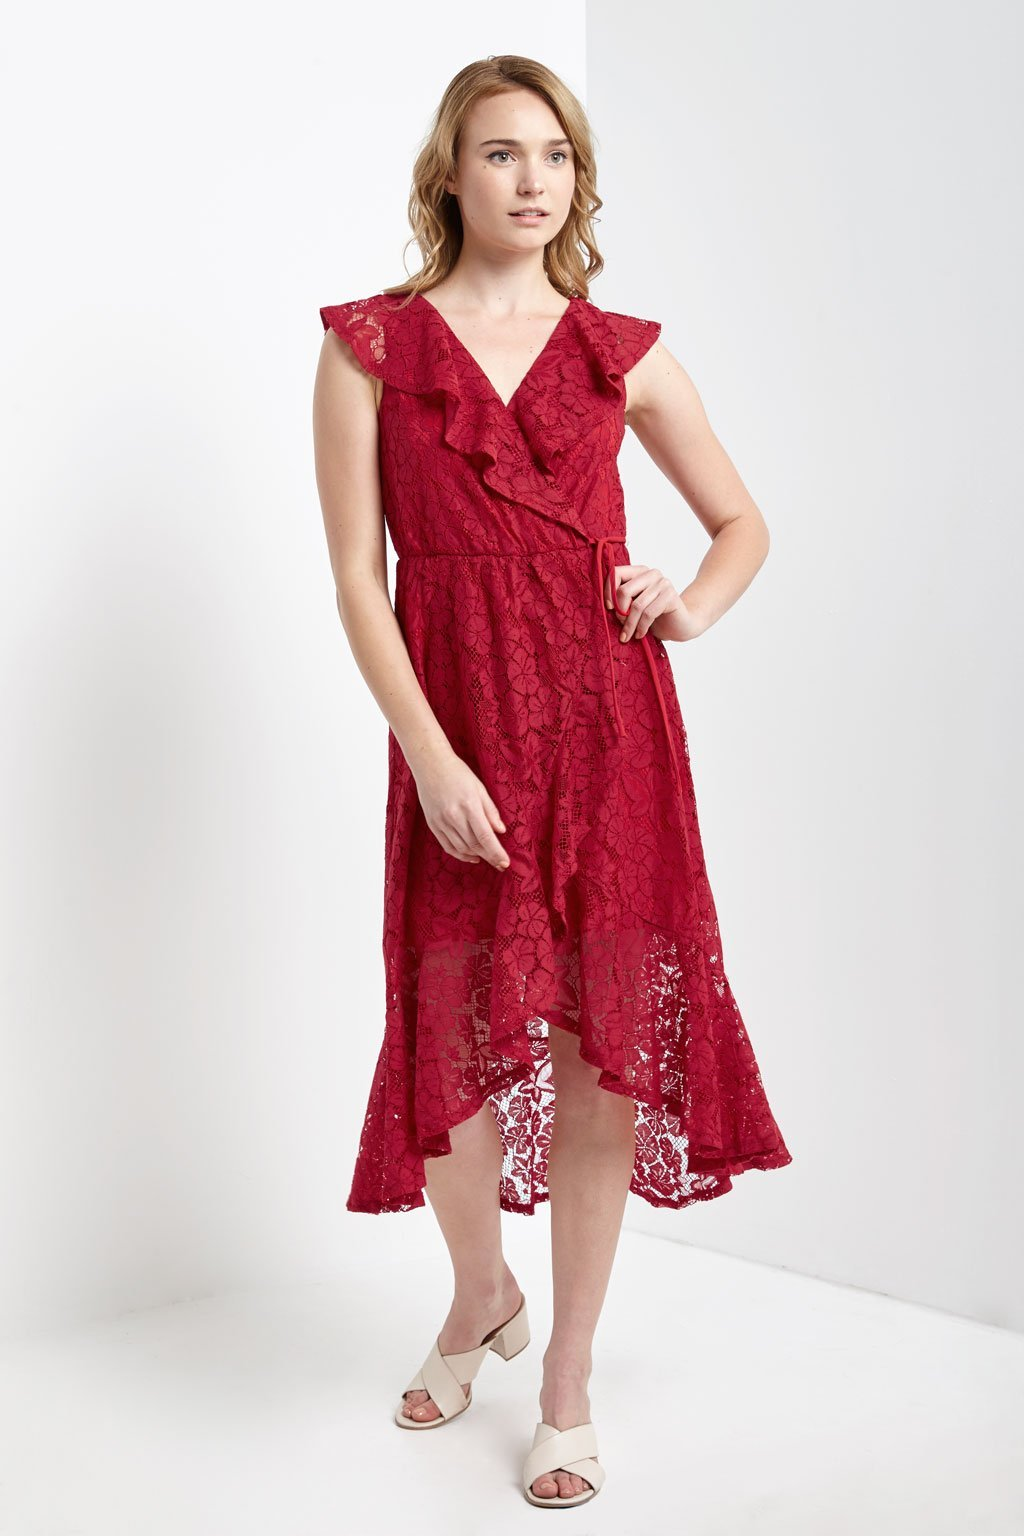 Poshsquare Dress S / Red Lace Ruffle Wrap Dress